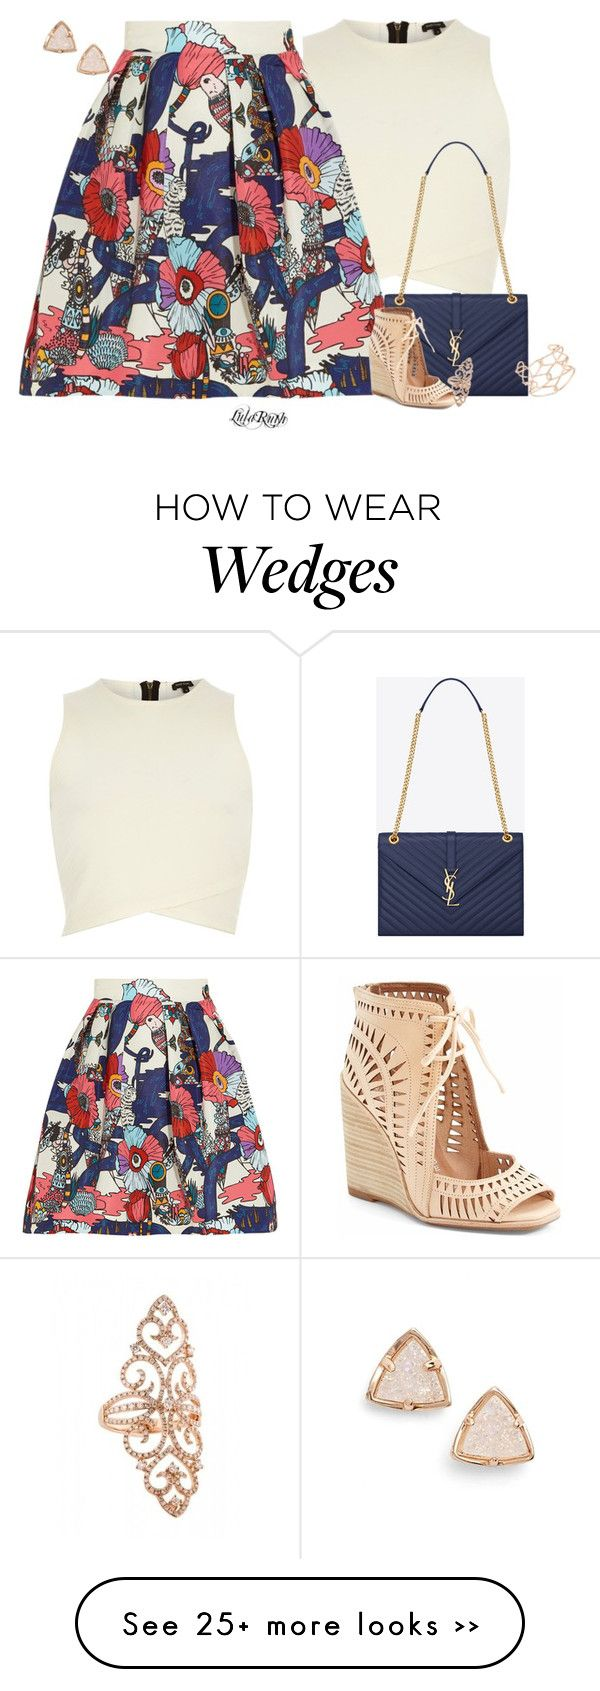 """""""Skirt with Wedge Sandal"""" by melanie-cross on Polyvore"""